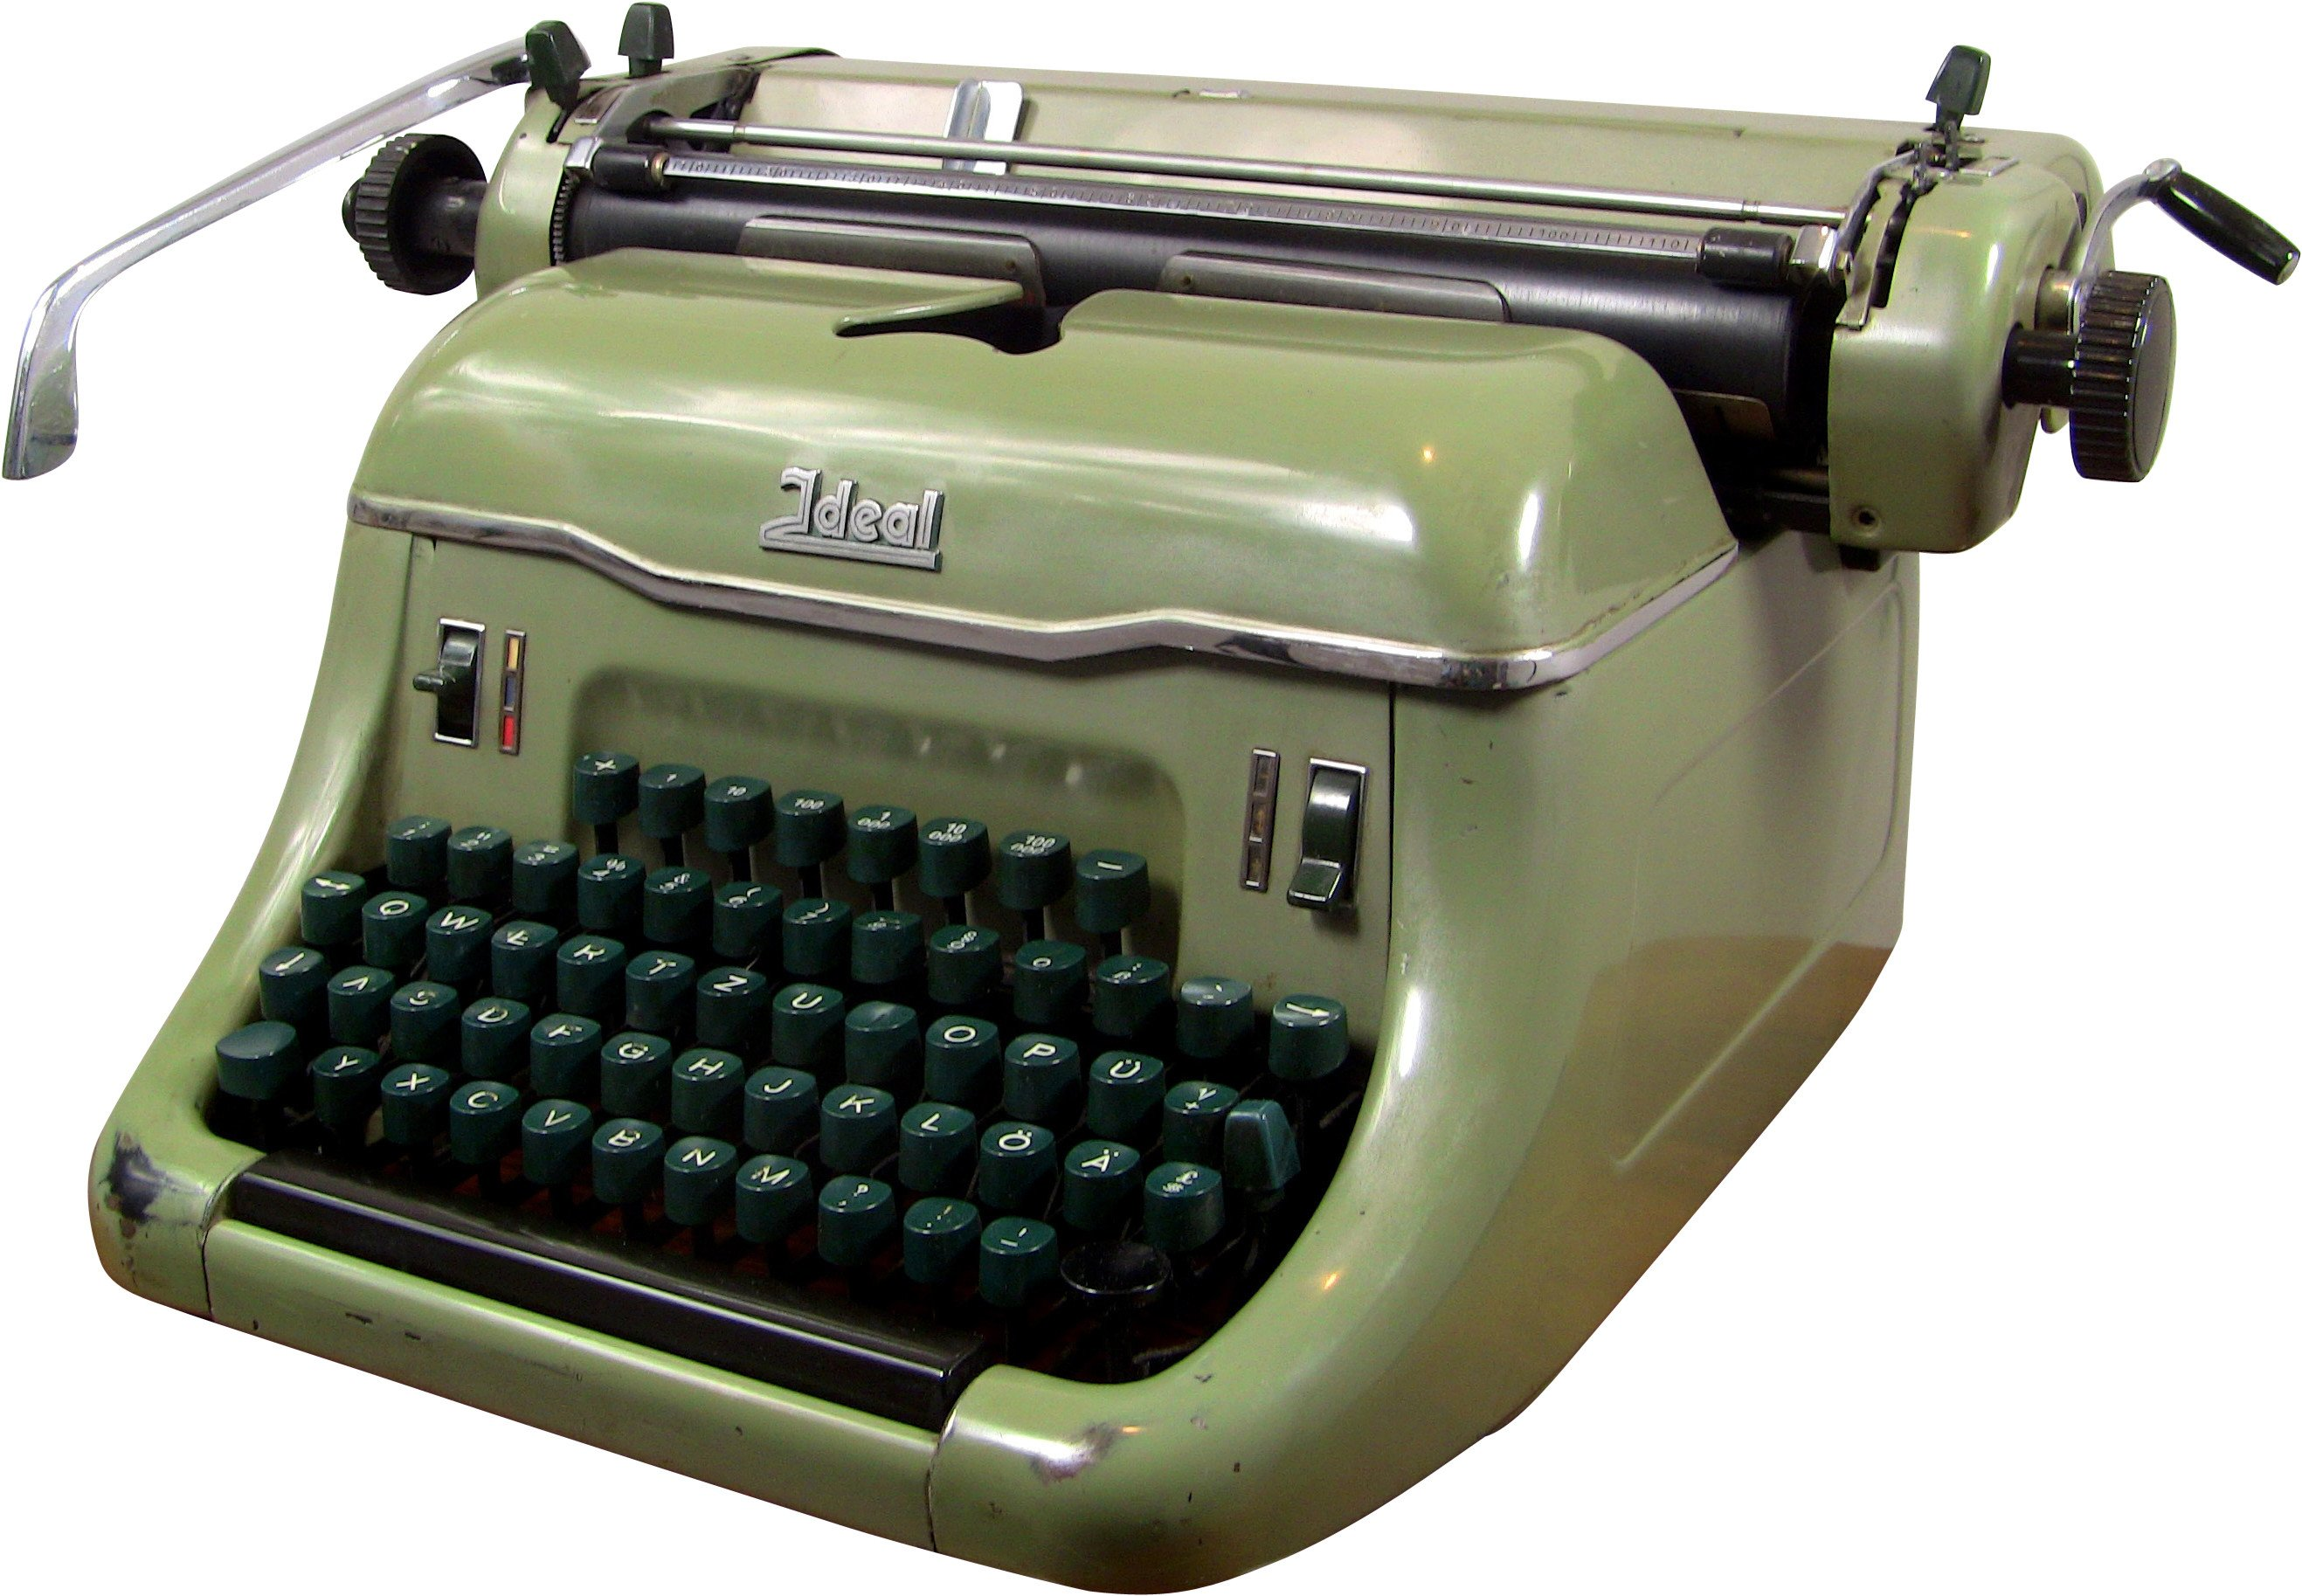 Typewriter, Ideal, Germany, 1960s